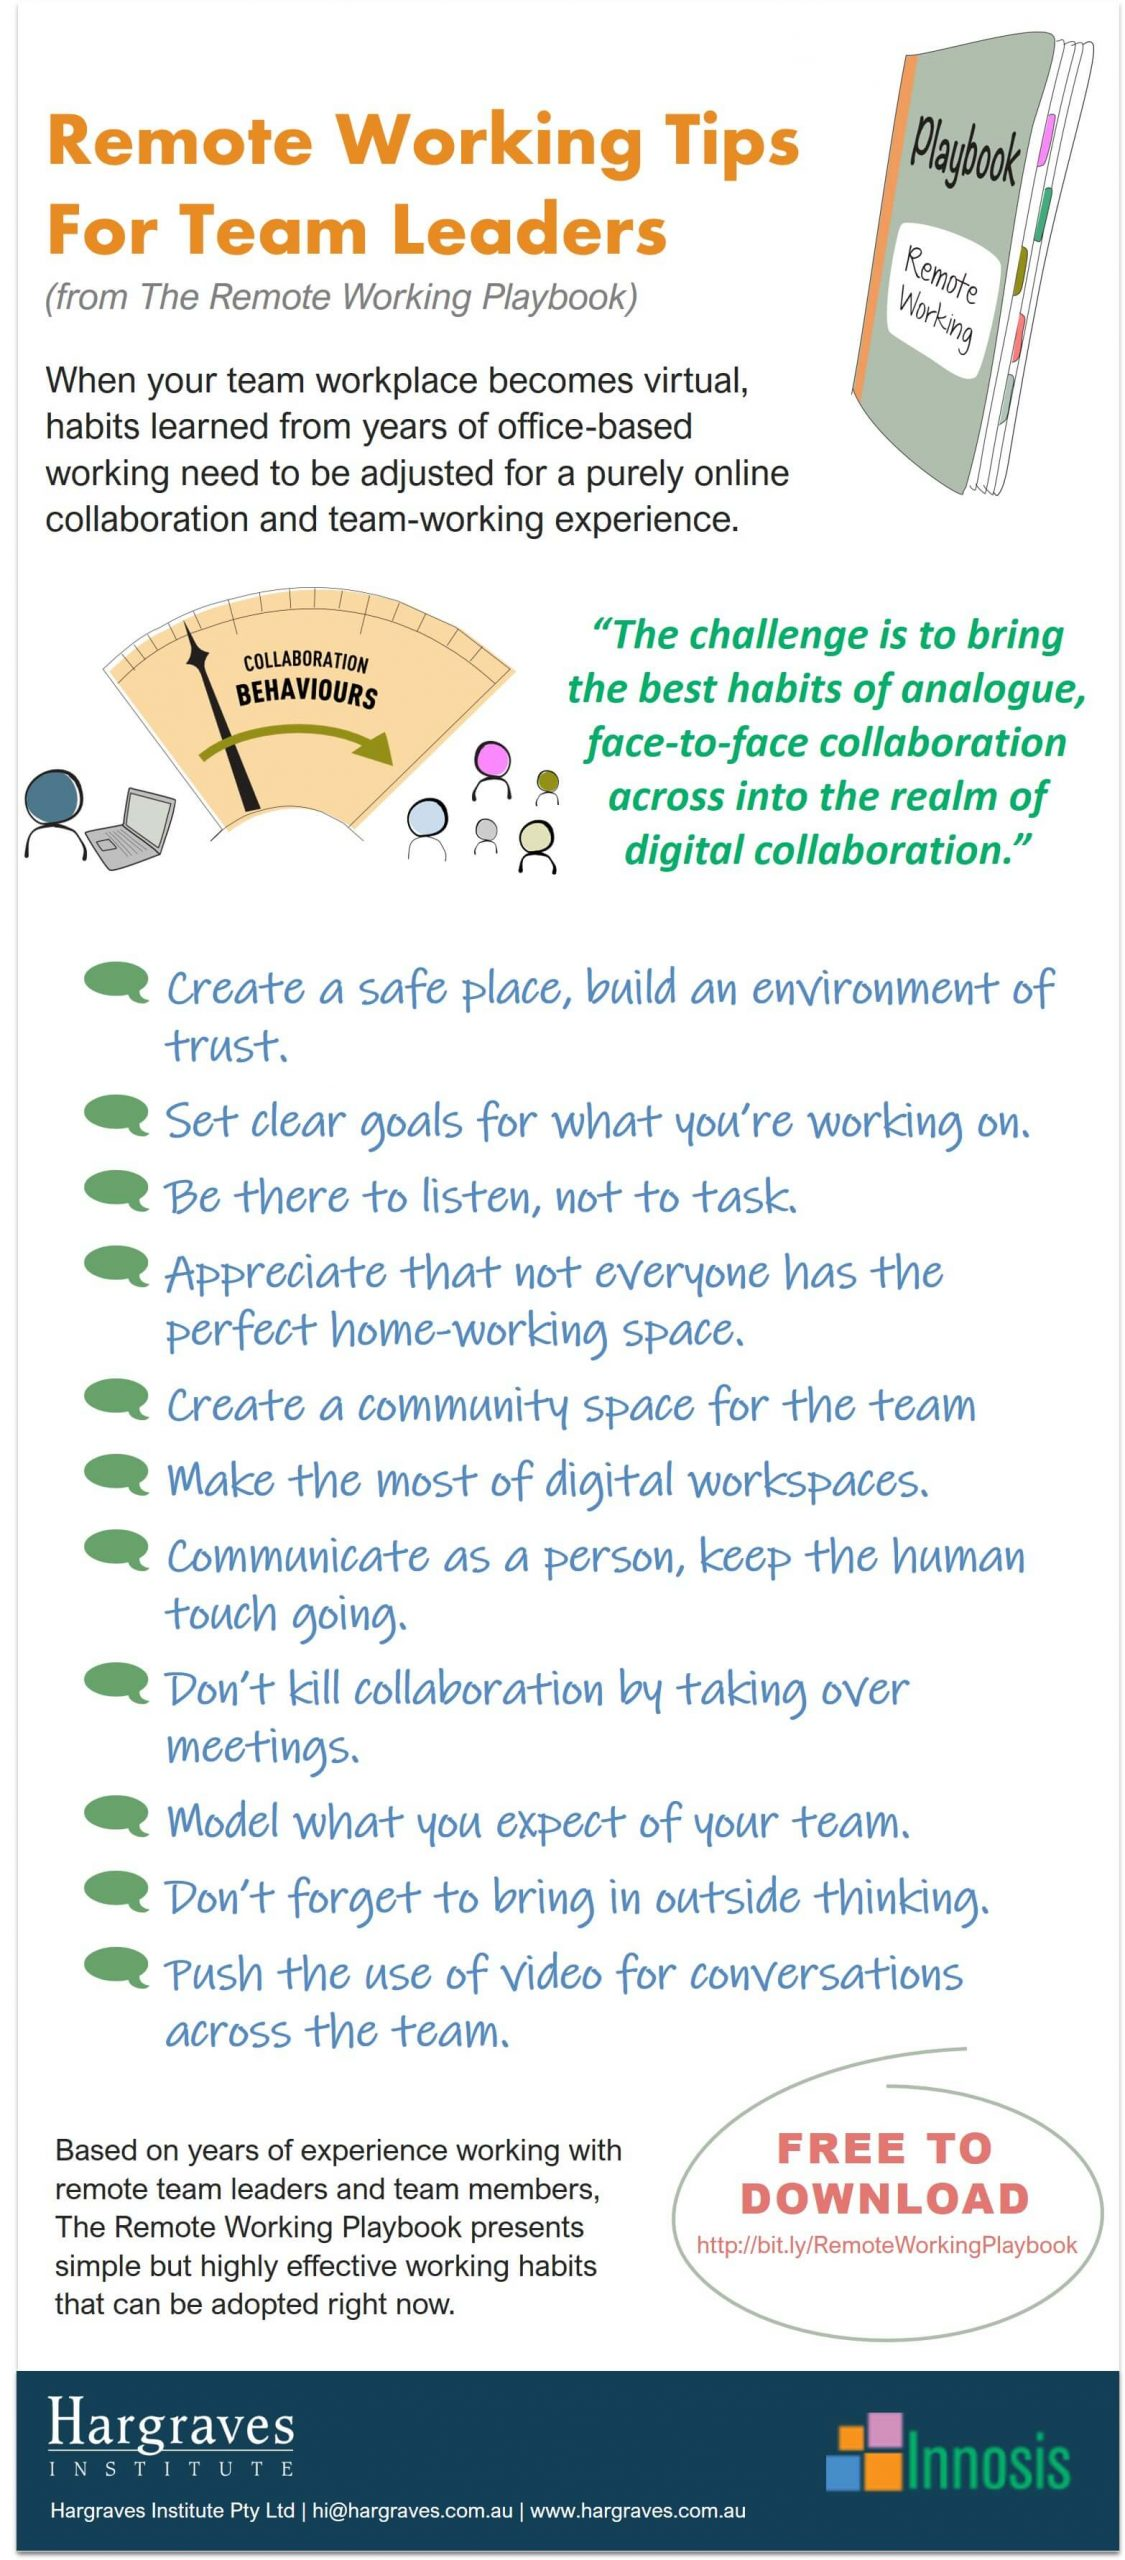 Remote Working Tips for Team Leaders